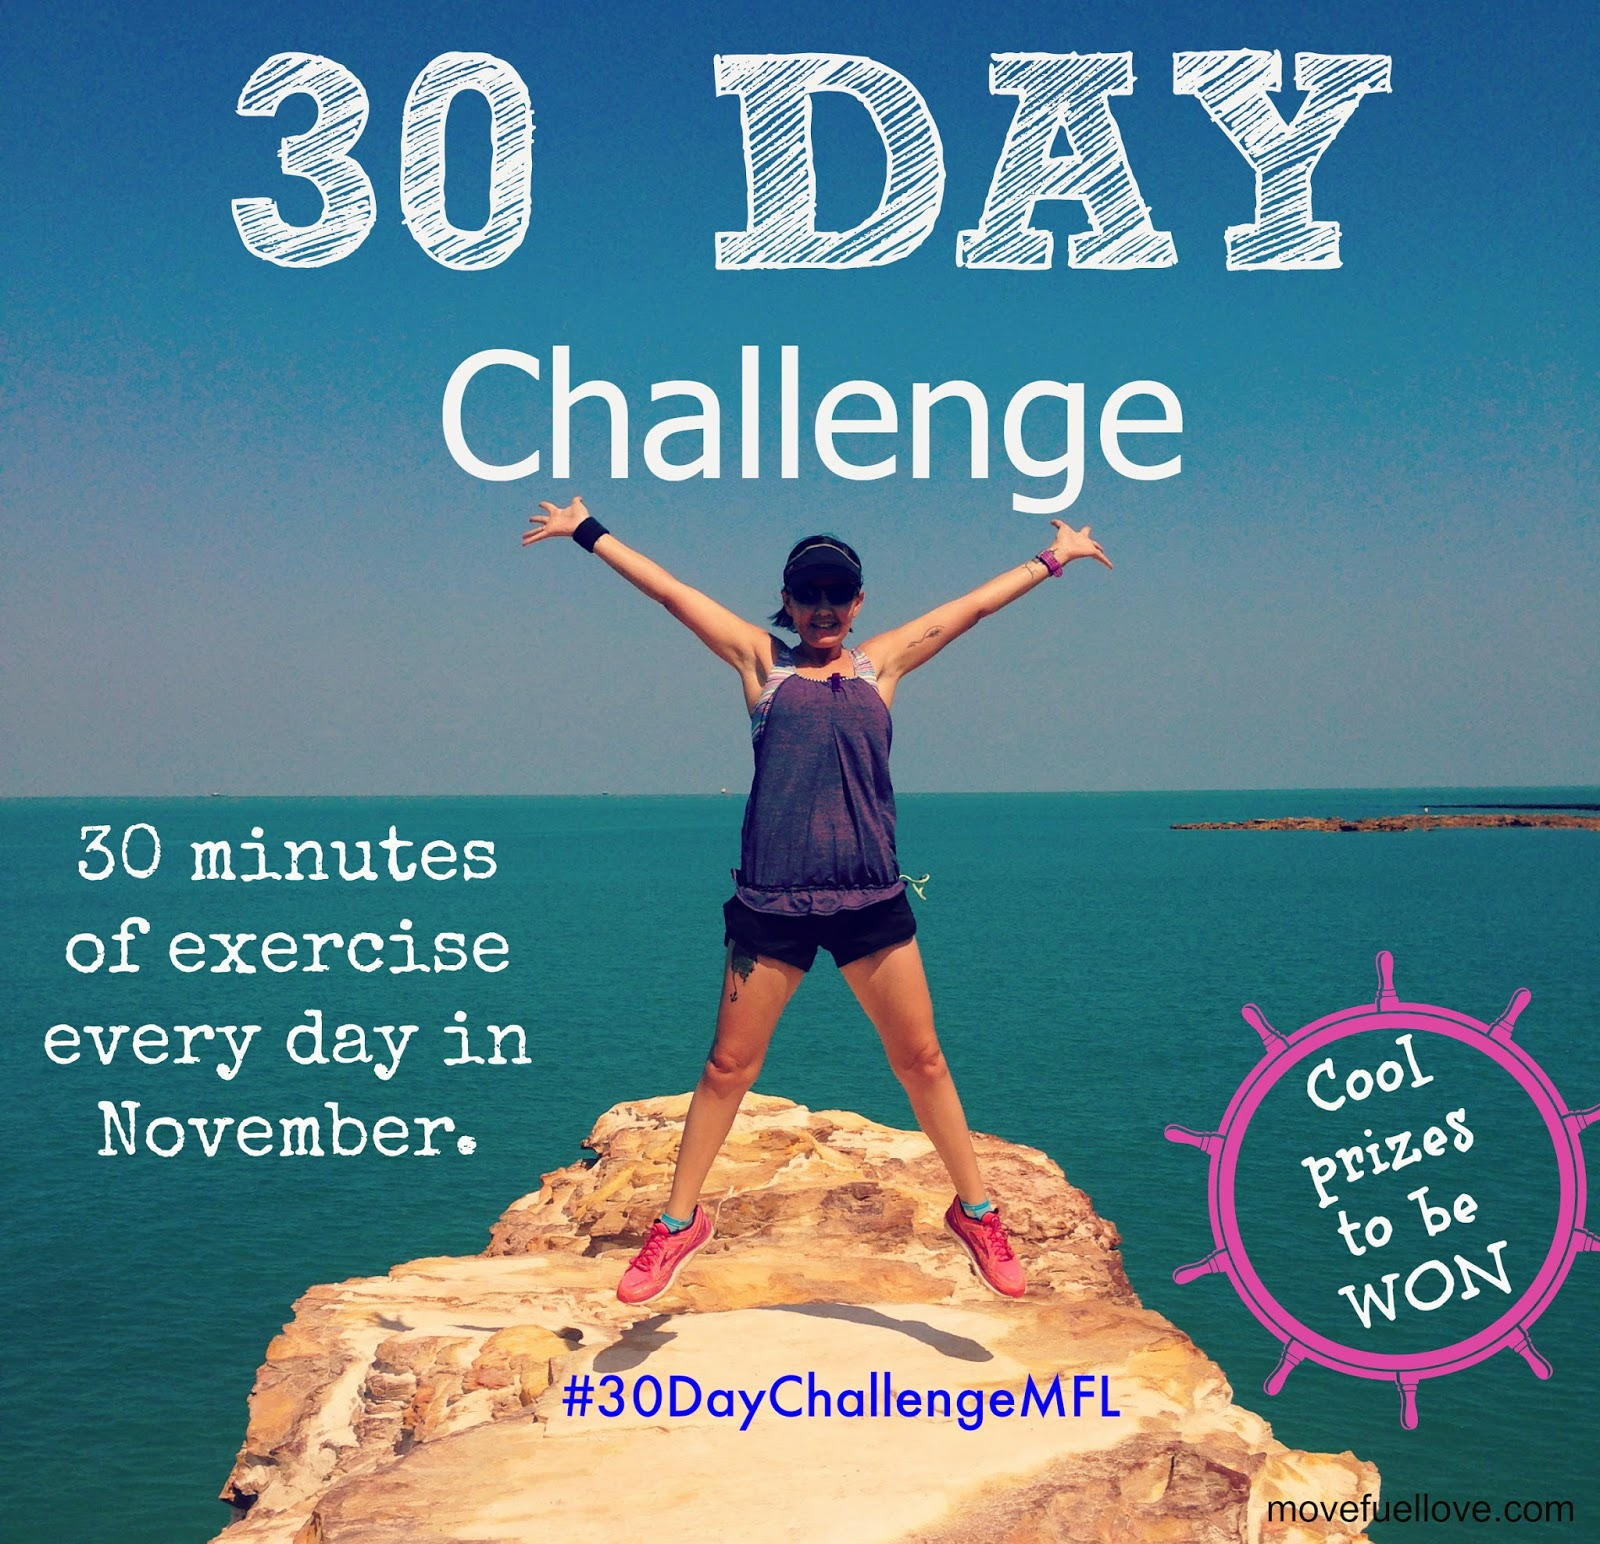 30 day challenge, fitness, health, wellbeing, nutrition, exercise, running, walking, swimming, exercising, giveaway, competition